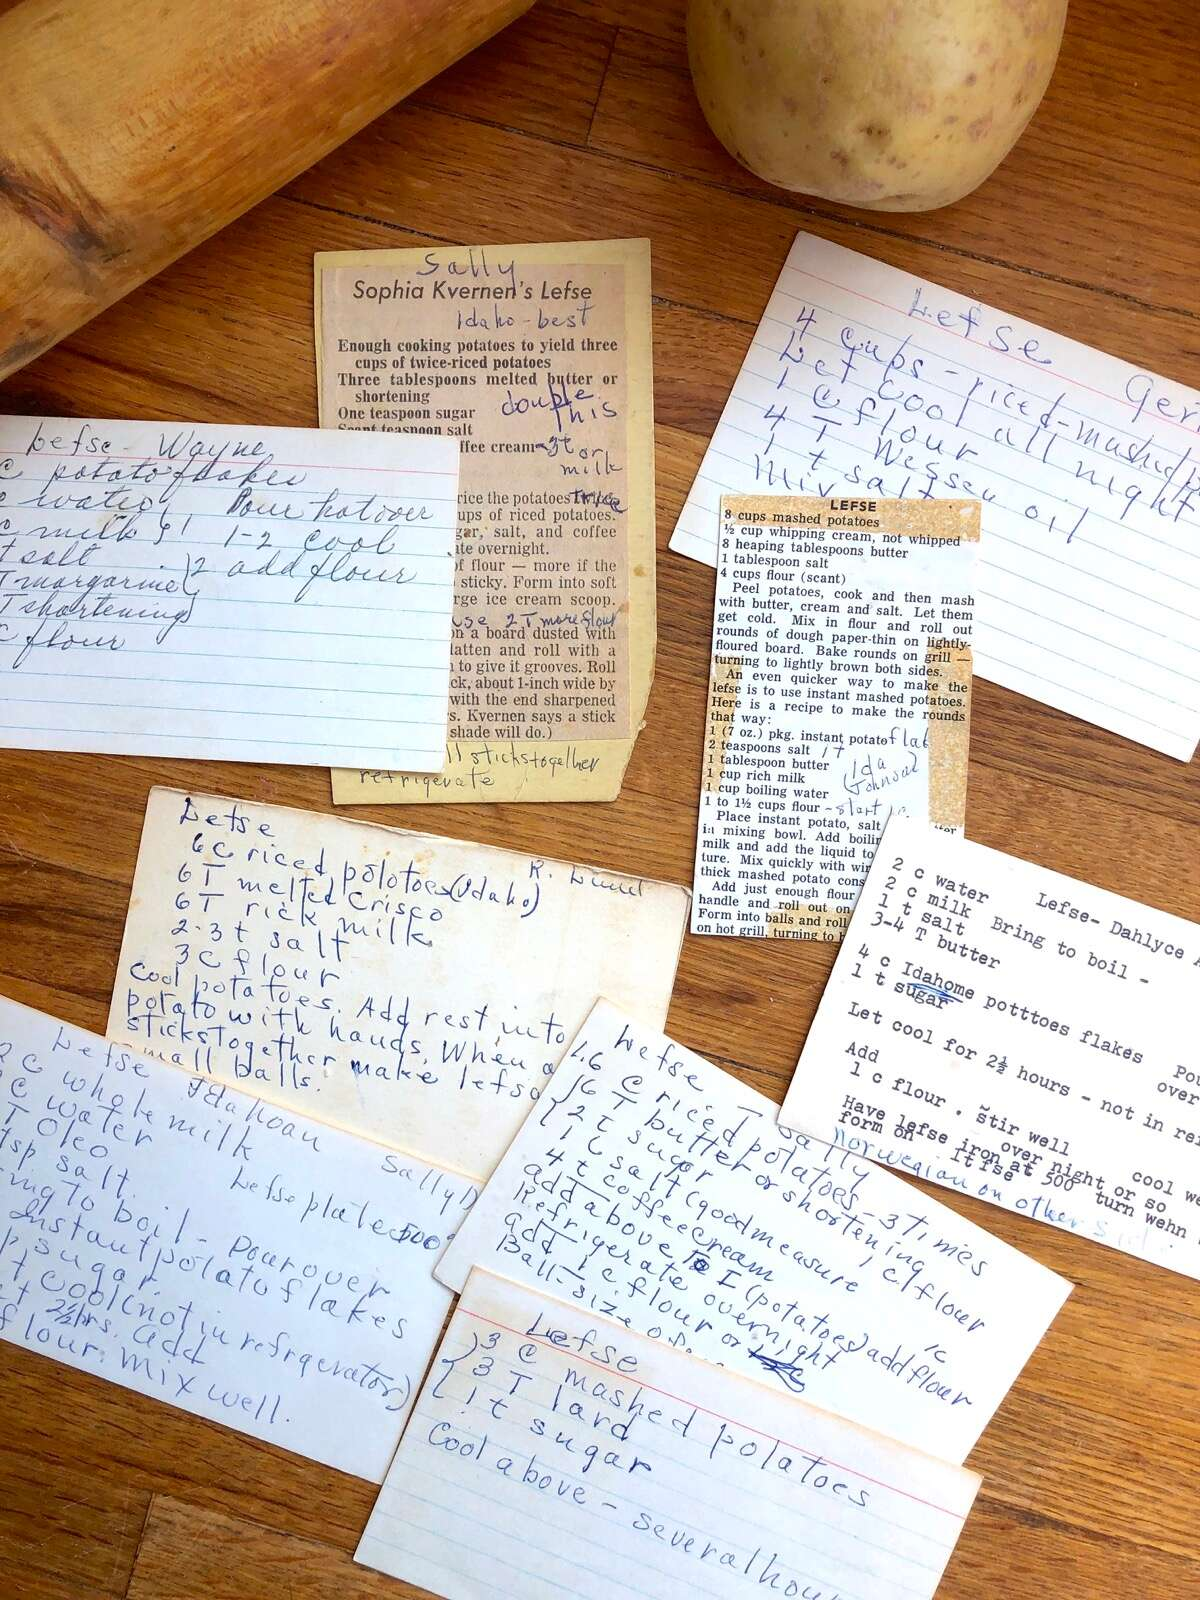 Recipe cards for lefse scattered on a kitchen table.